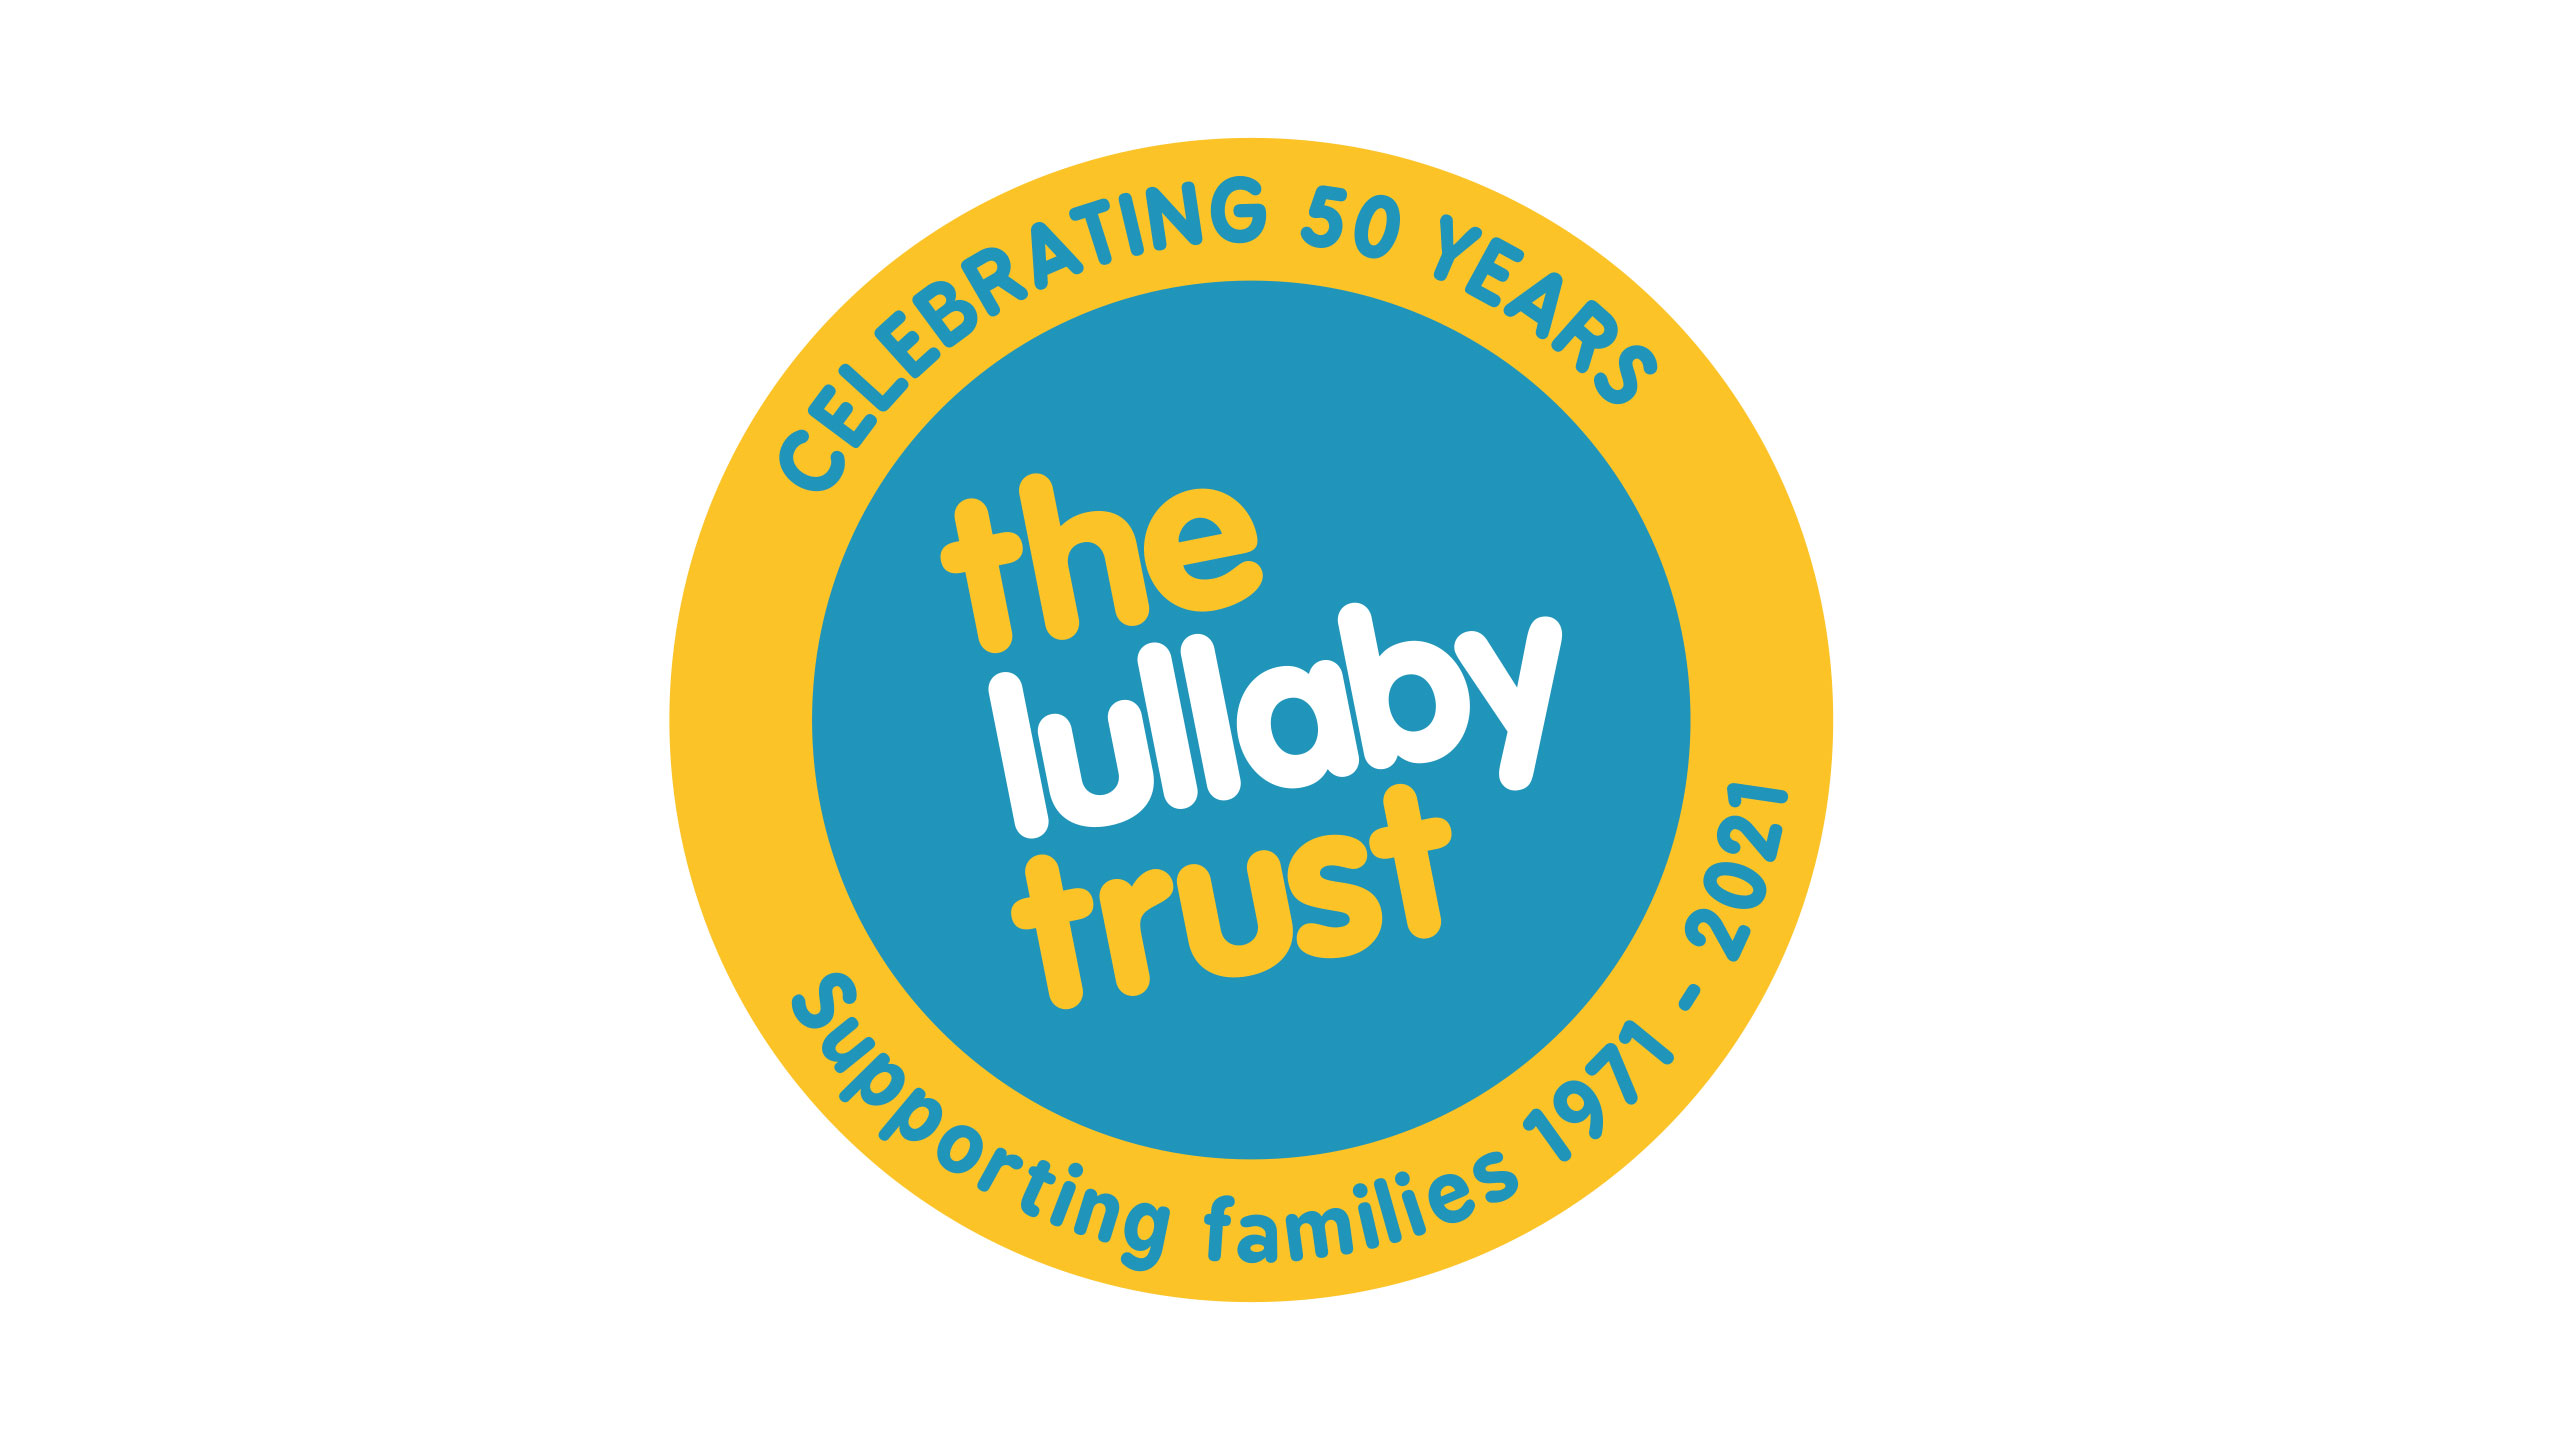 lullaby-trust-50th-anniversary-logo-website-landing-page